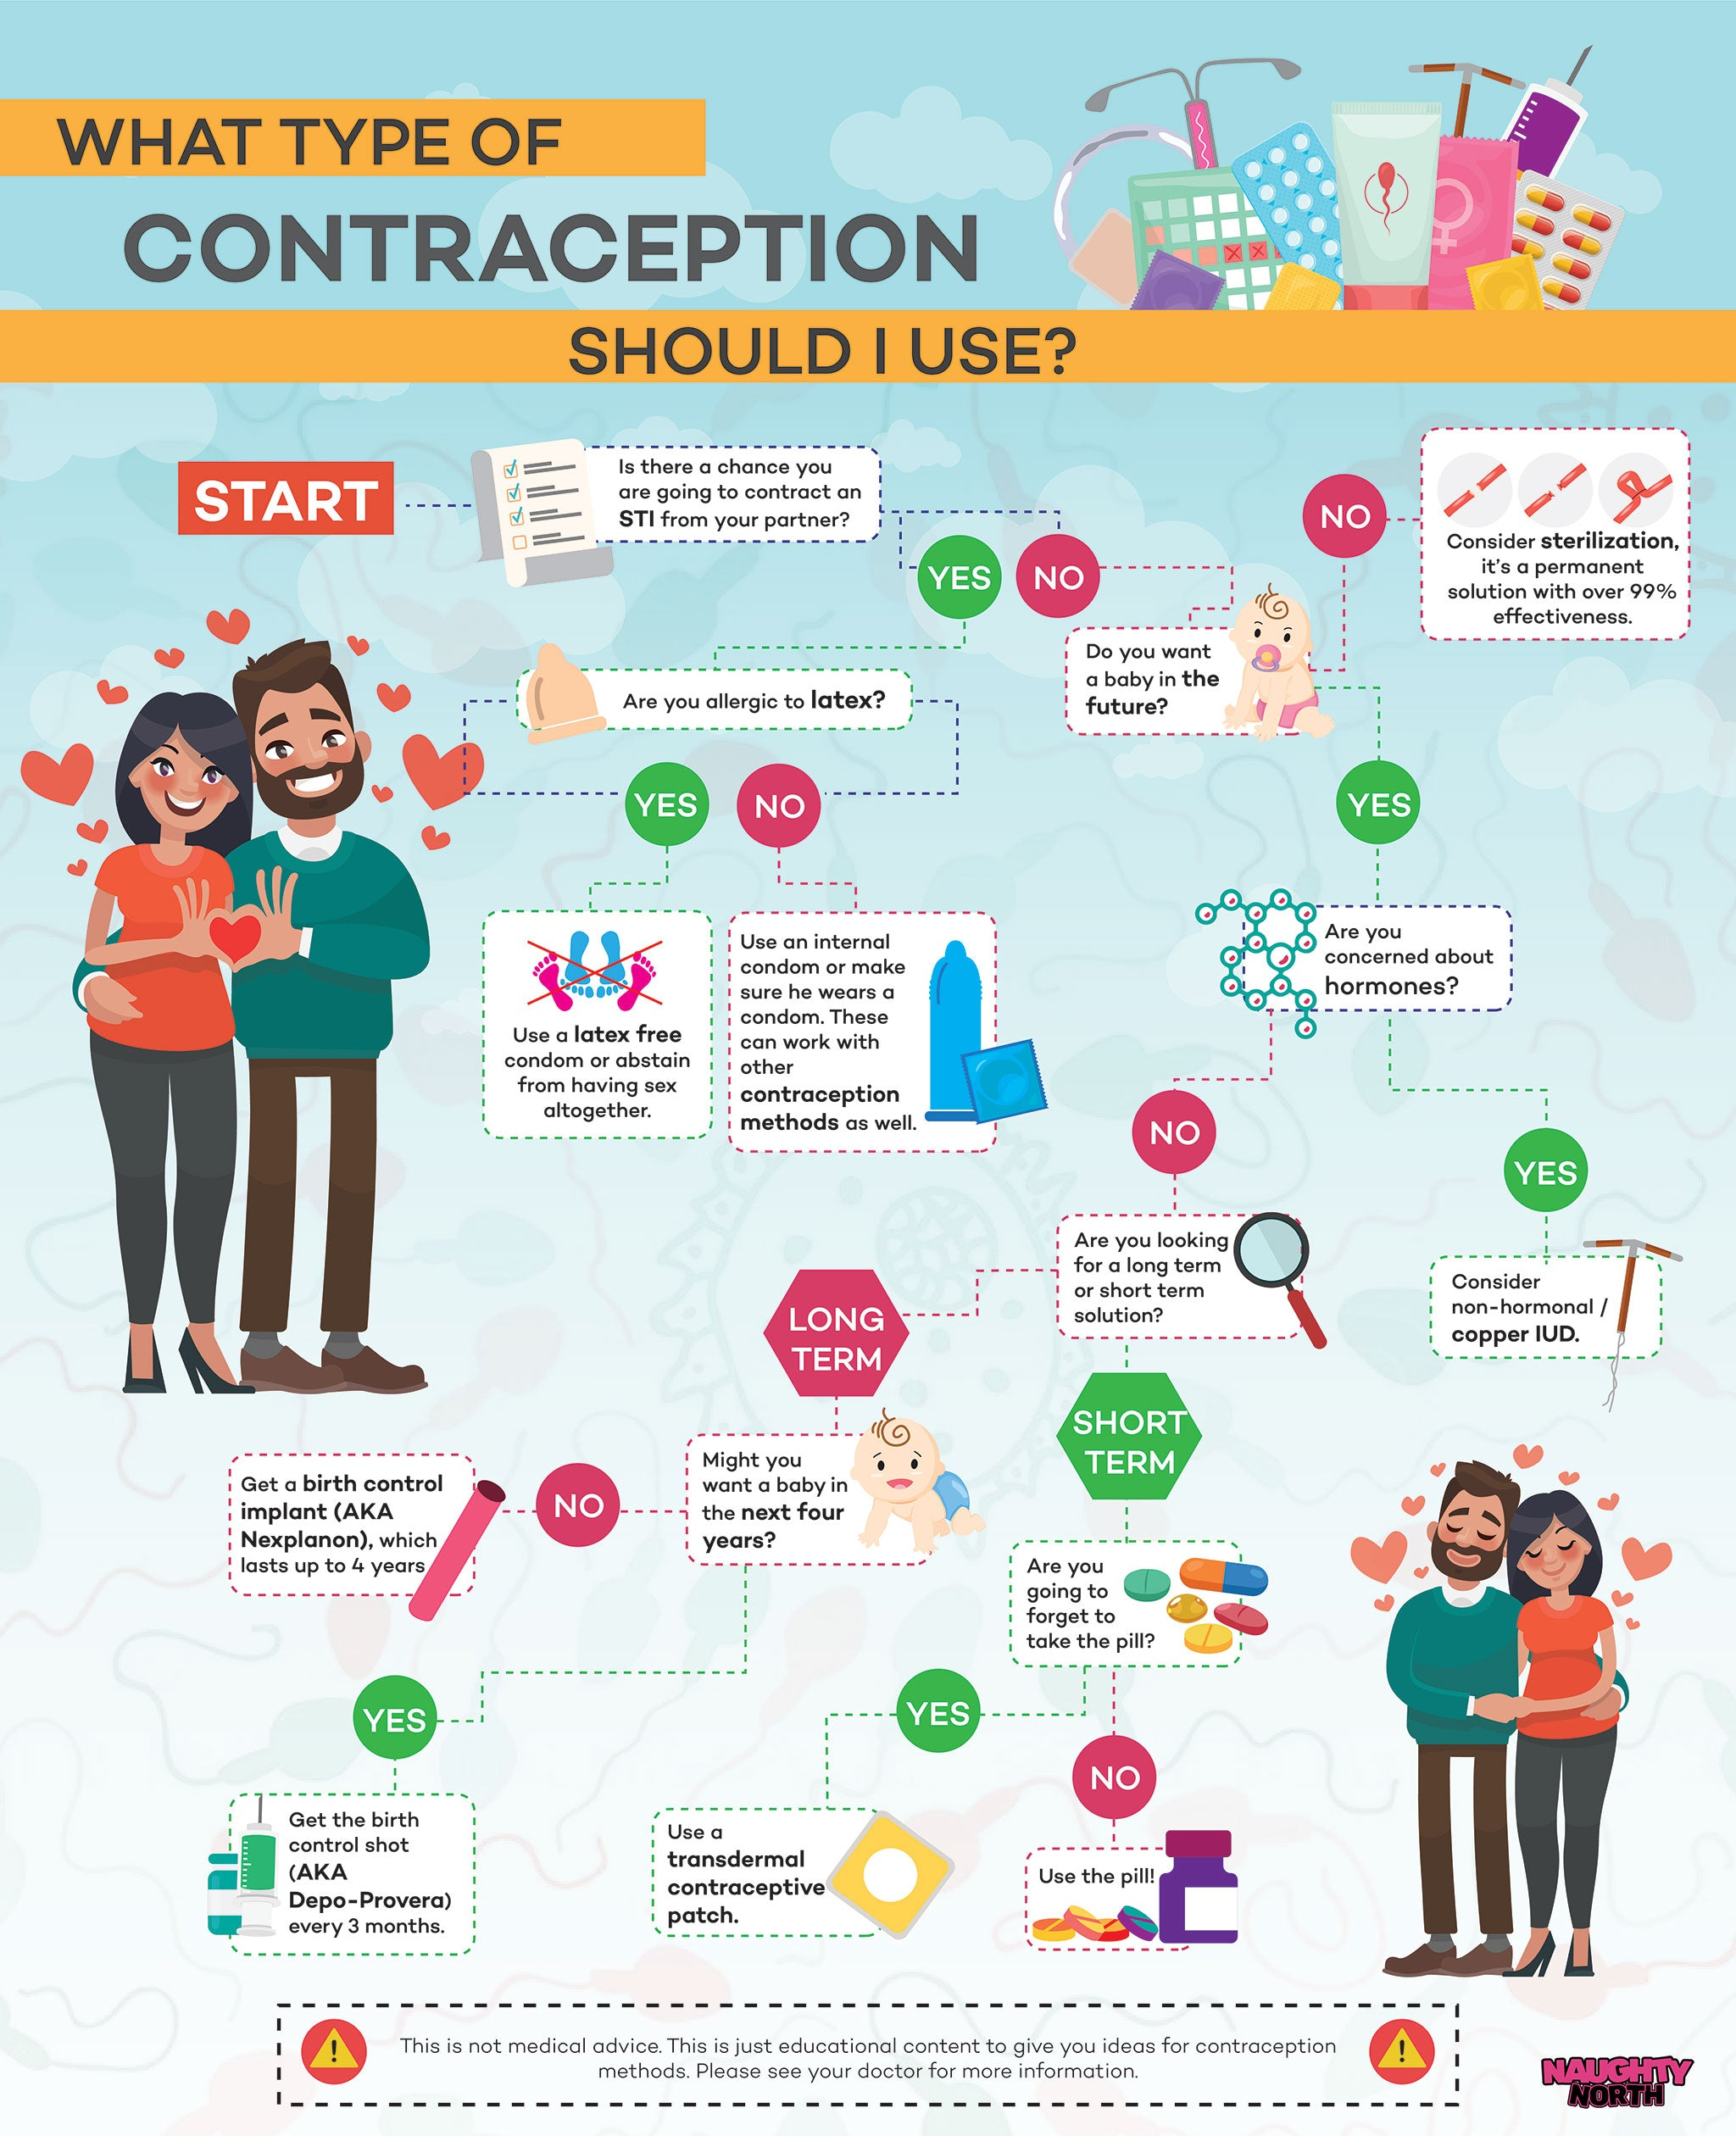 Which Contraception Method Should I Use?